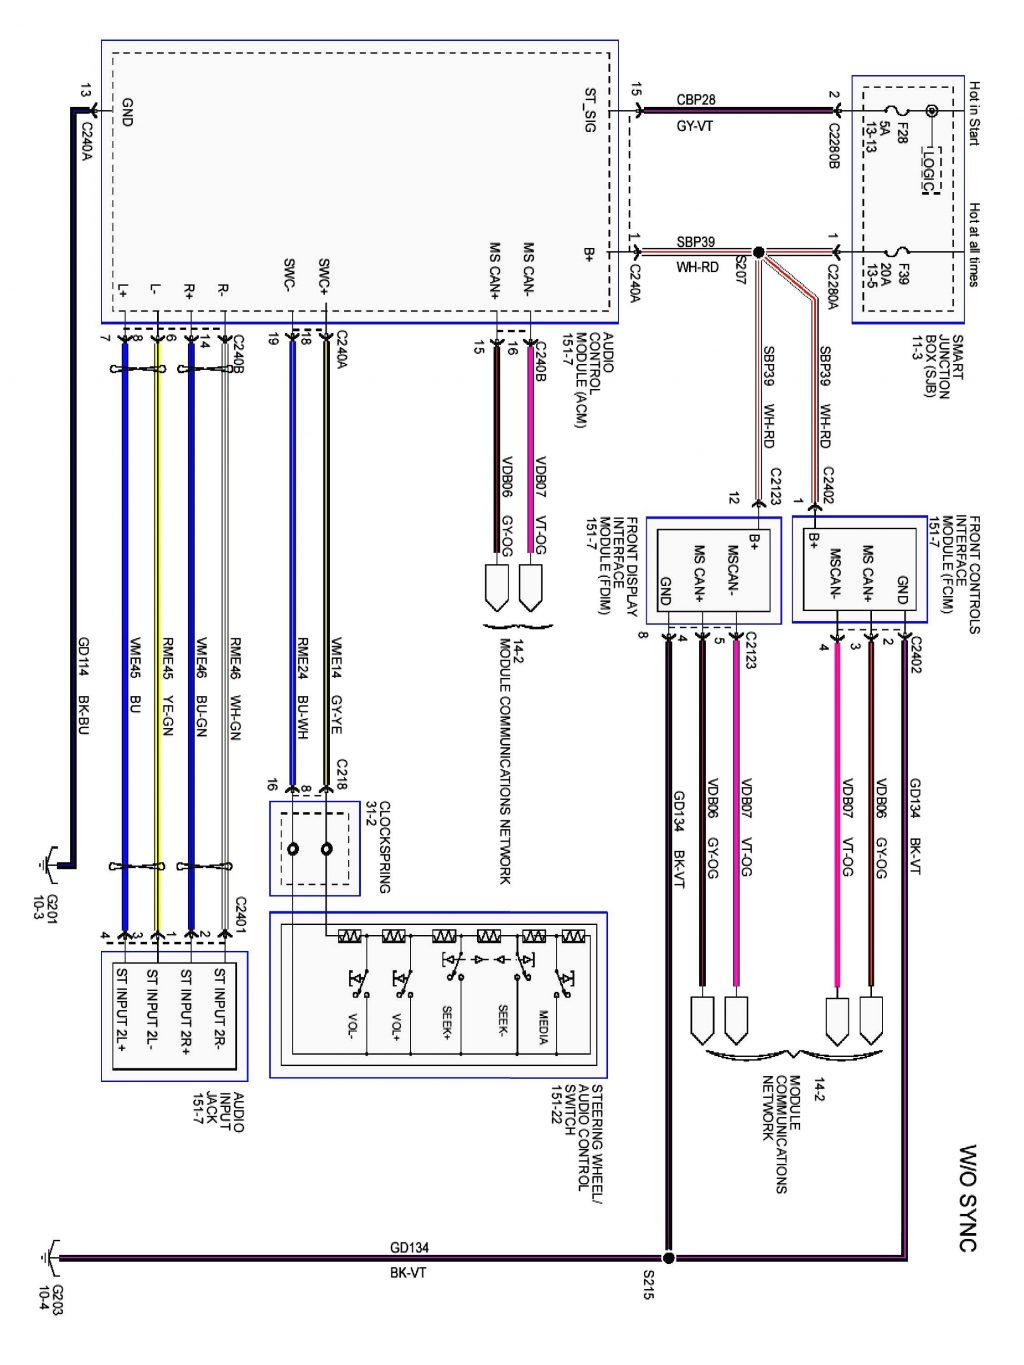 amp research power step wiring diagram Download-Amp Research Power Step Wiring Diagram 11-k